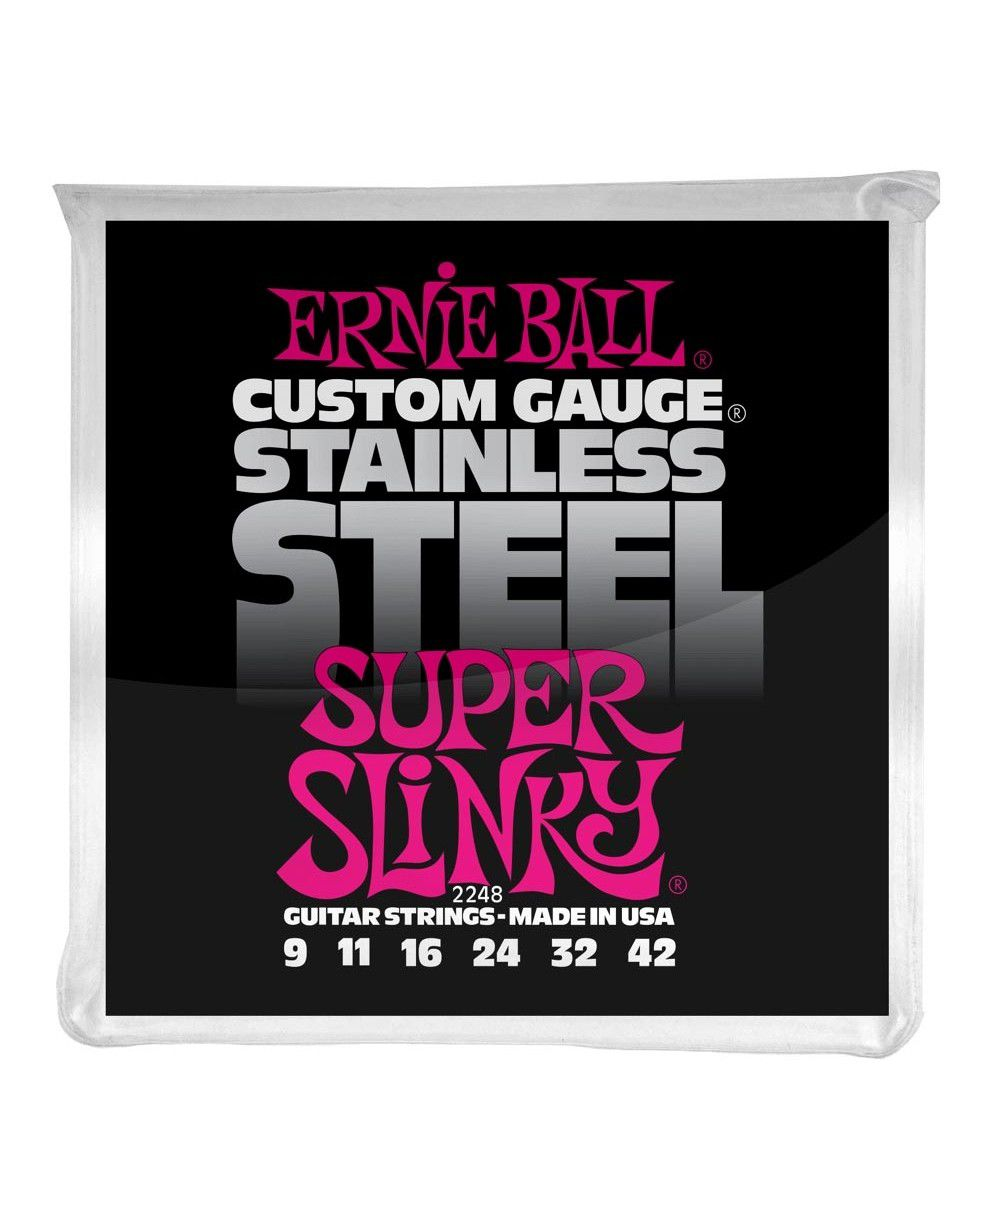 Encordoamento p/Guitarra Ernie Ball Regular Slinky Stainless Steel 09-042 - P02248